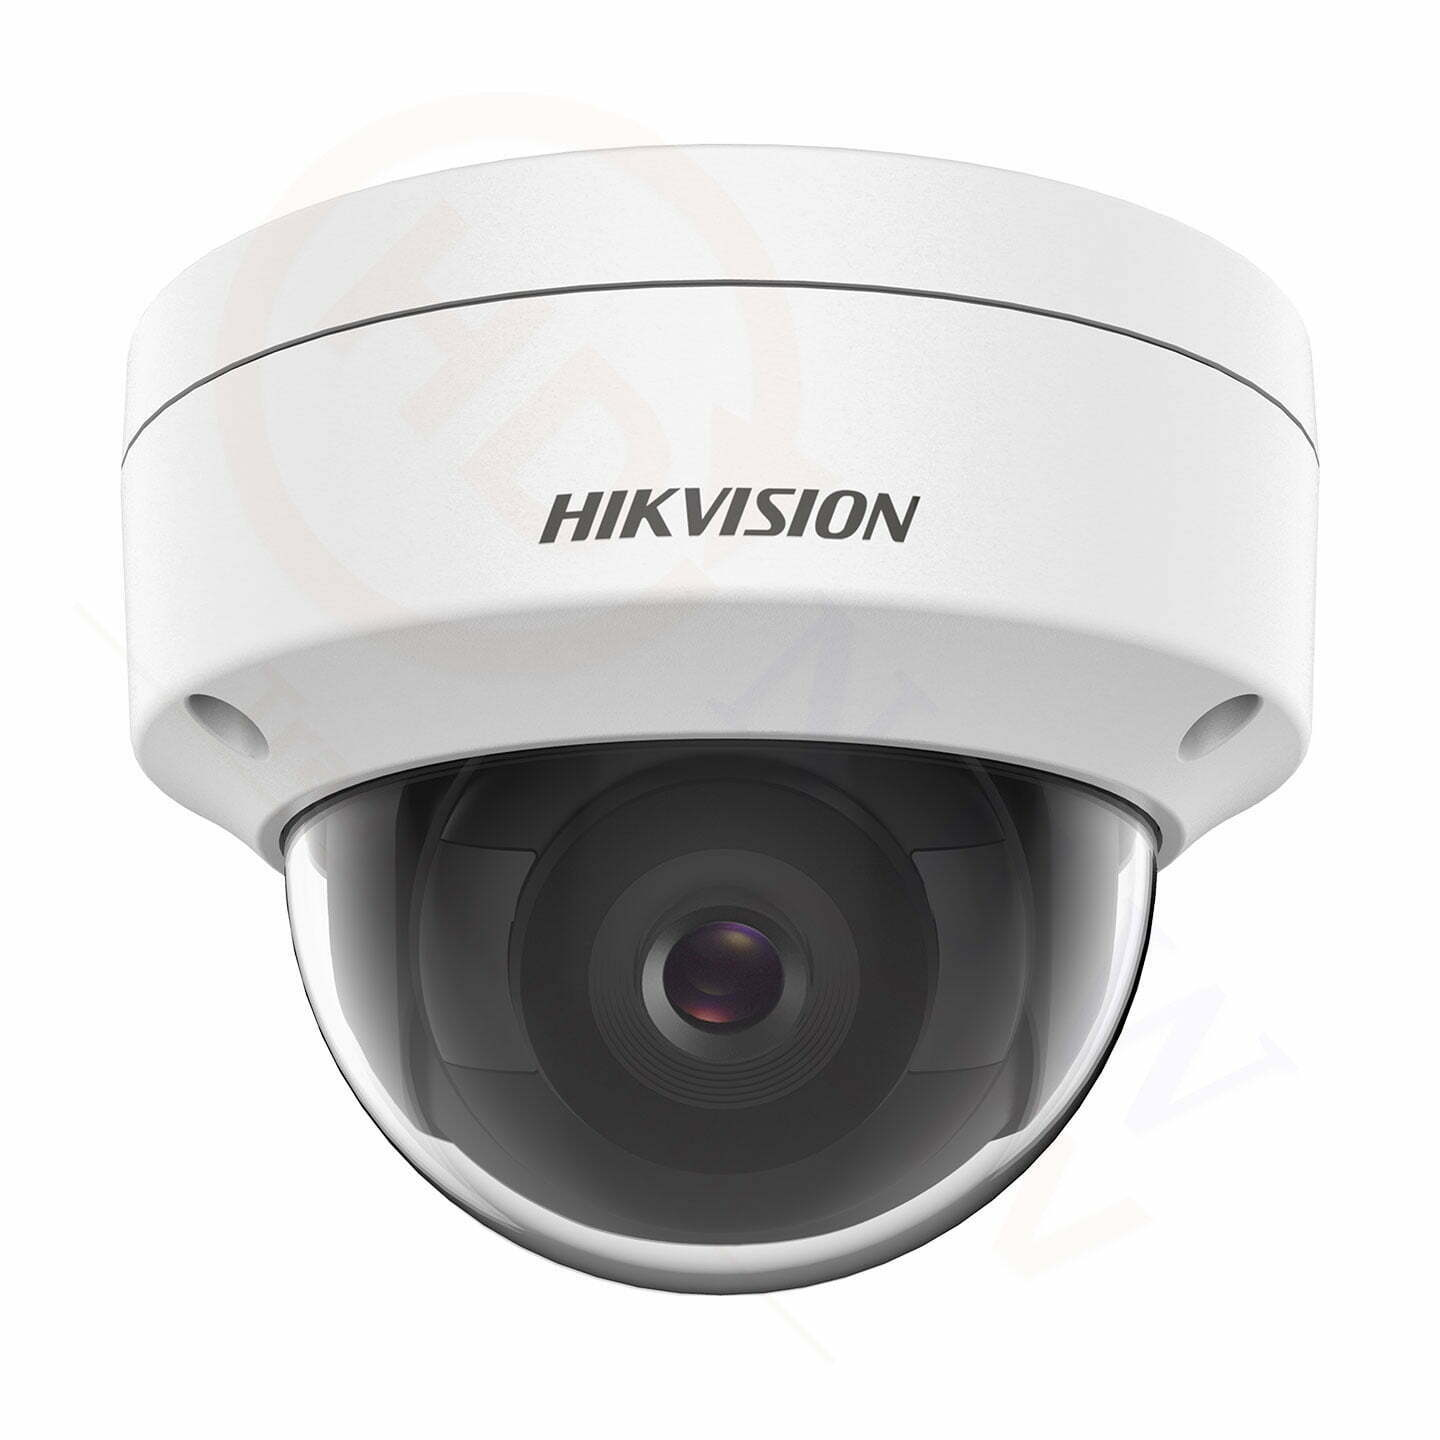 Hikvision DS-2CD1143G0E-IF | 4MP IP PoE Dome Camera | HDnew CCTV